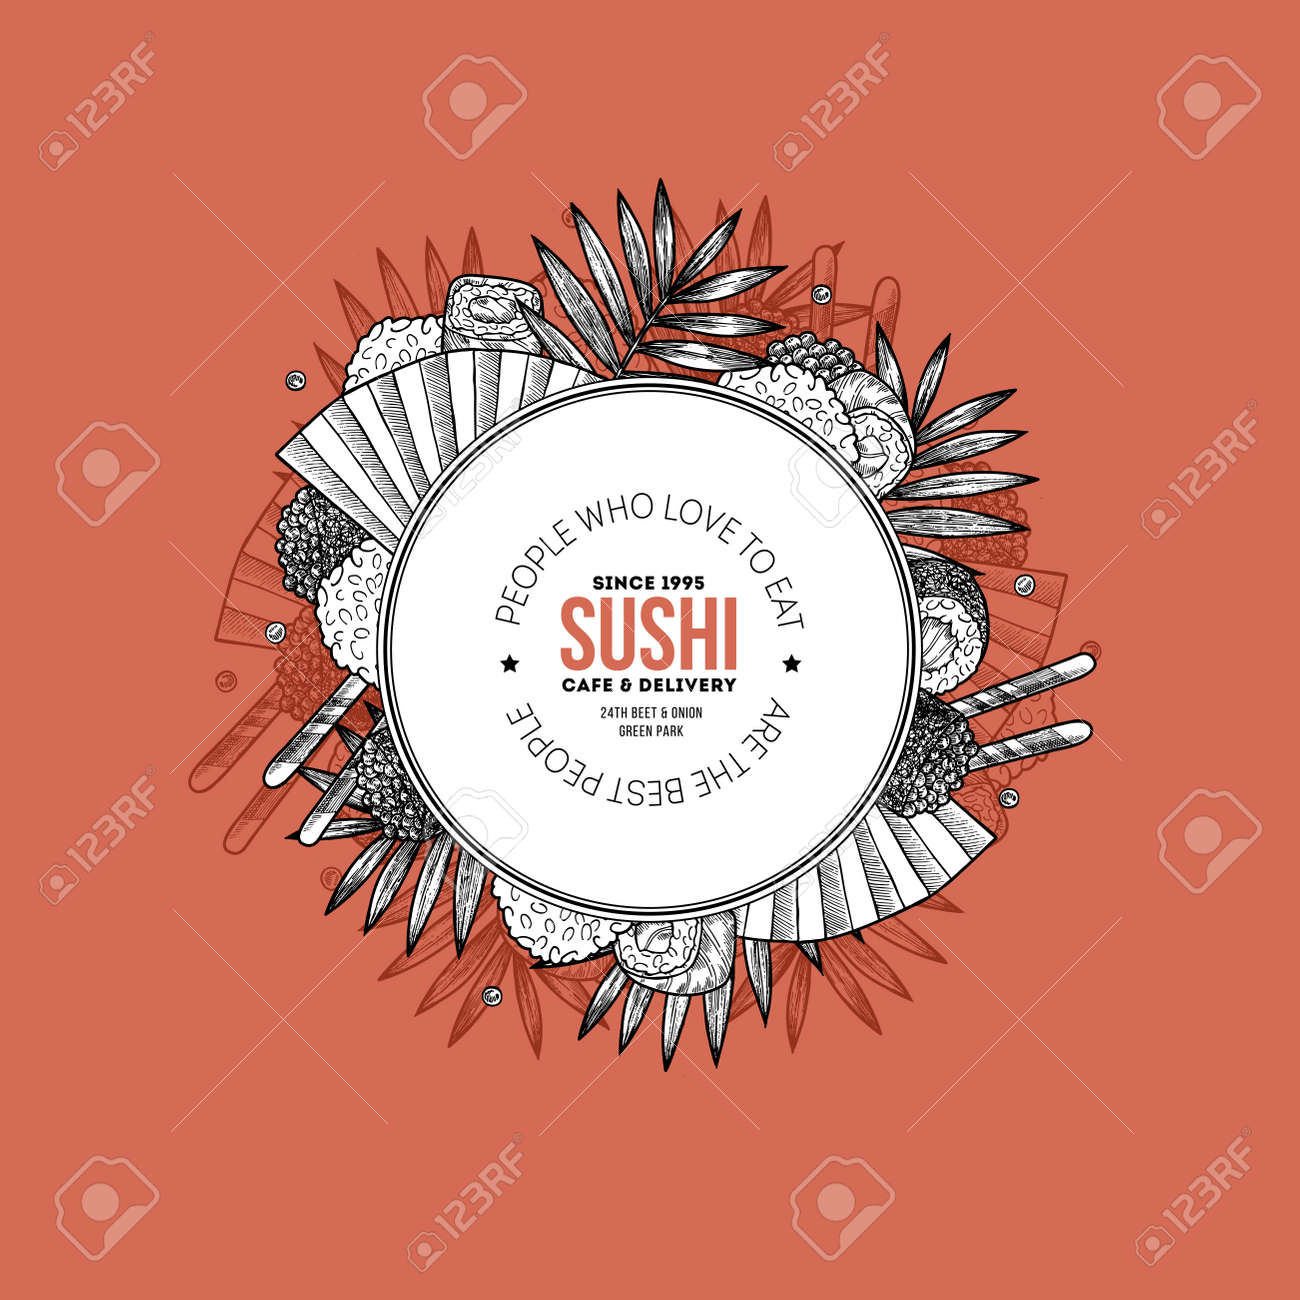 Asian Food Design Template Sushi Restaurant Menu Round Composition